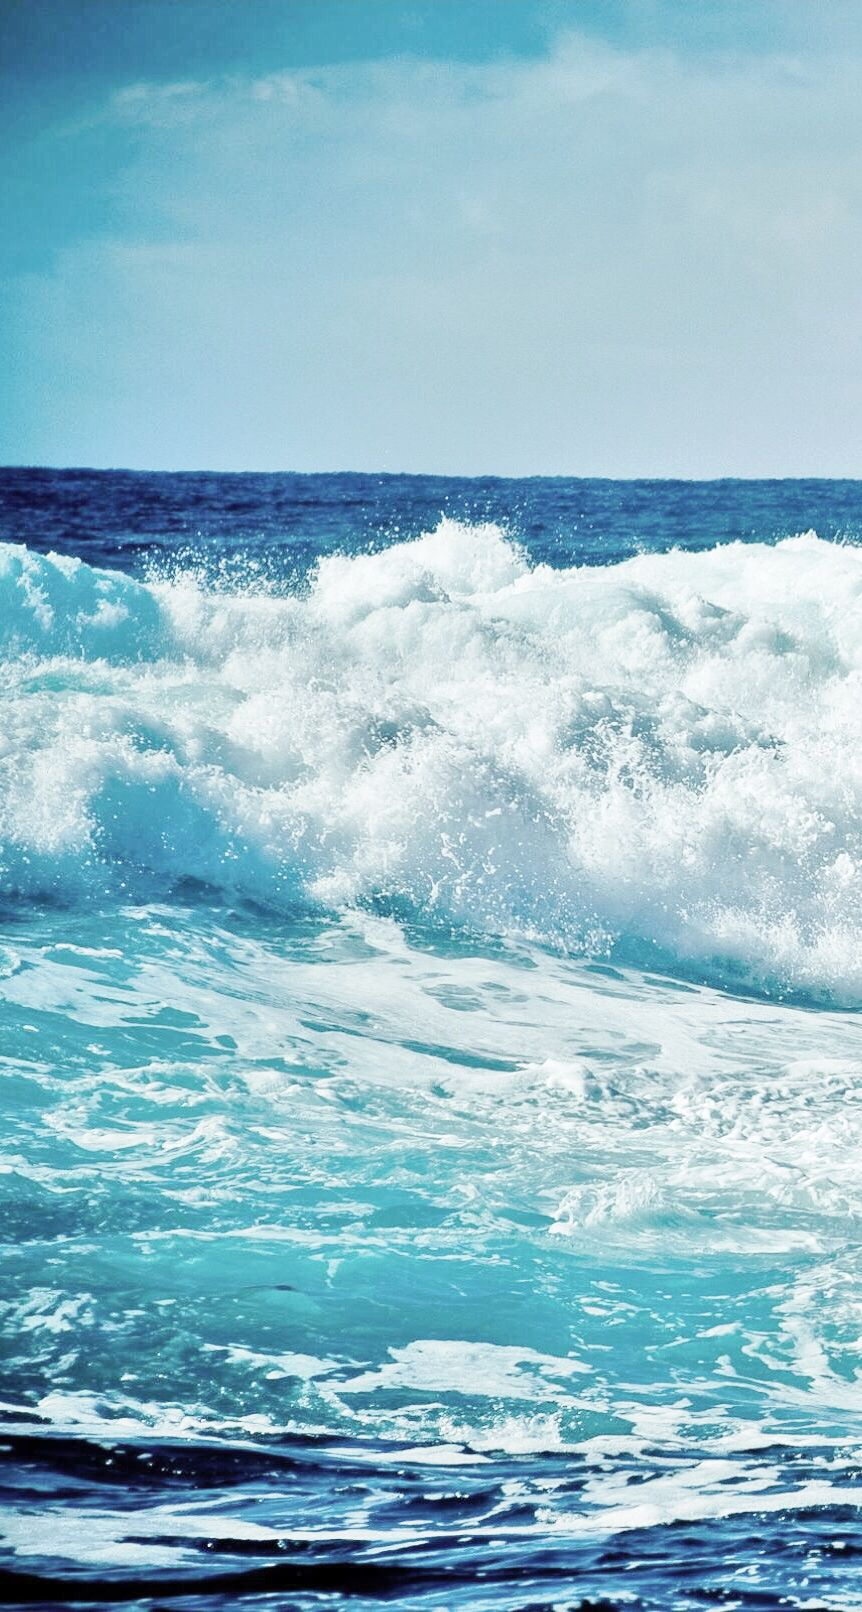 Ocean Waves Iphone Wallpaper Waves Ocean Scenes Ocean